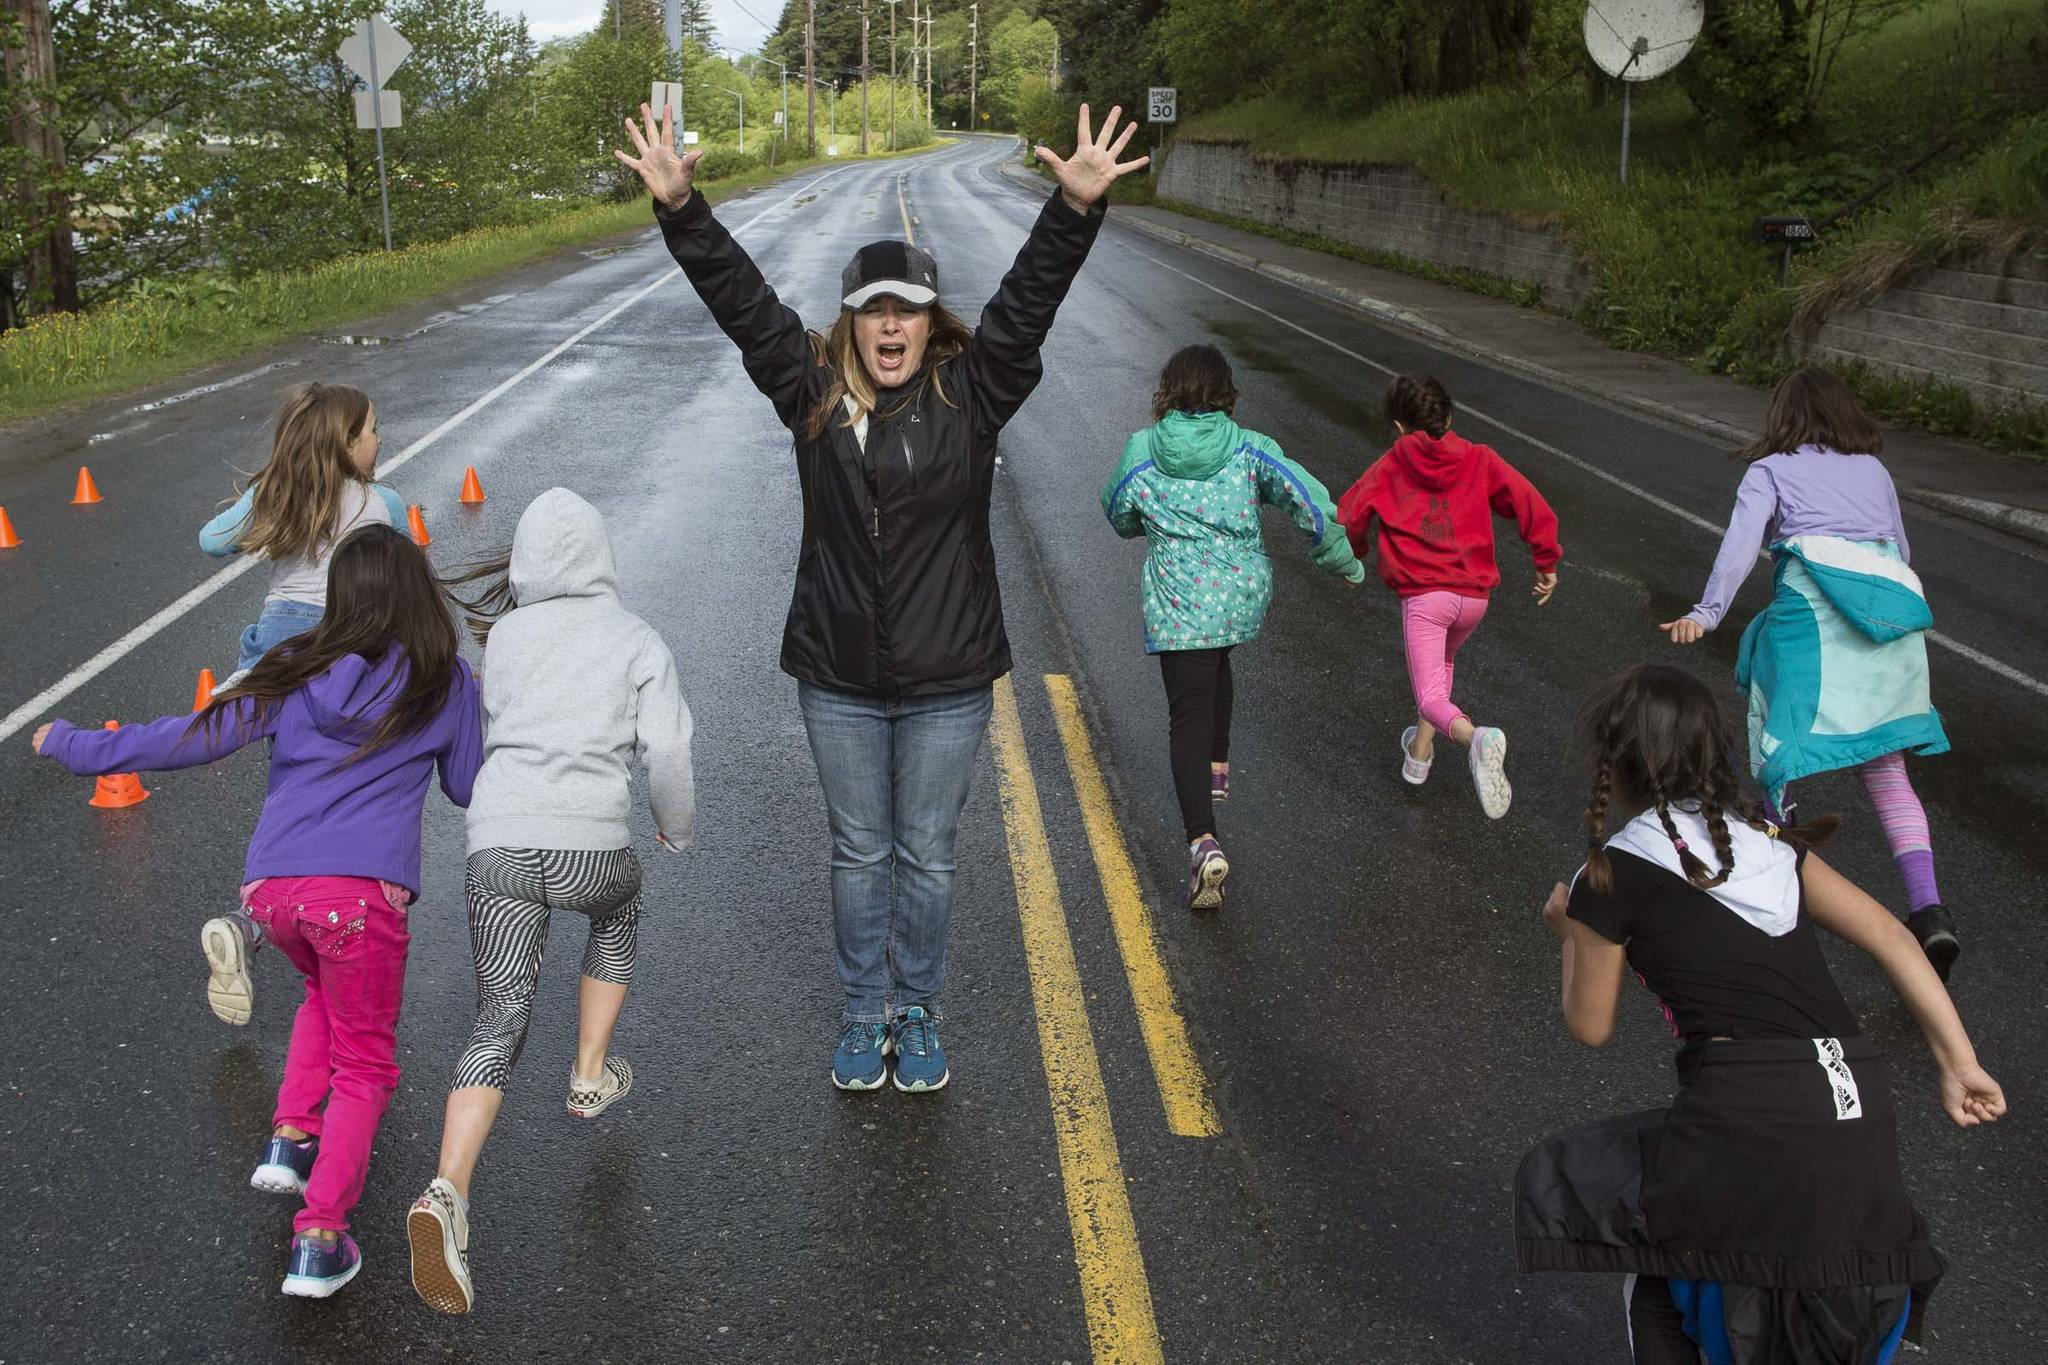 Physical Education Teacher Nikki Richert send students off for Harborview Elementary School's annual Fun Run along Glacier Avenue on Friday, May 17, 2019. Students from Montessori Borealis also ran the three mile course. (Michael Penn | Juneau Empire)